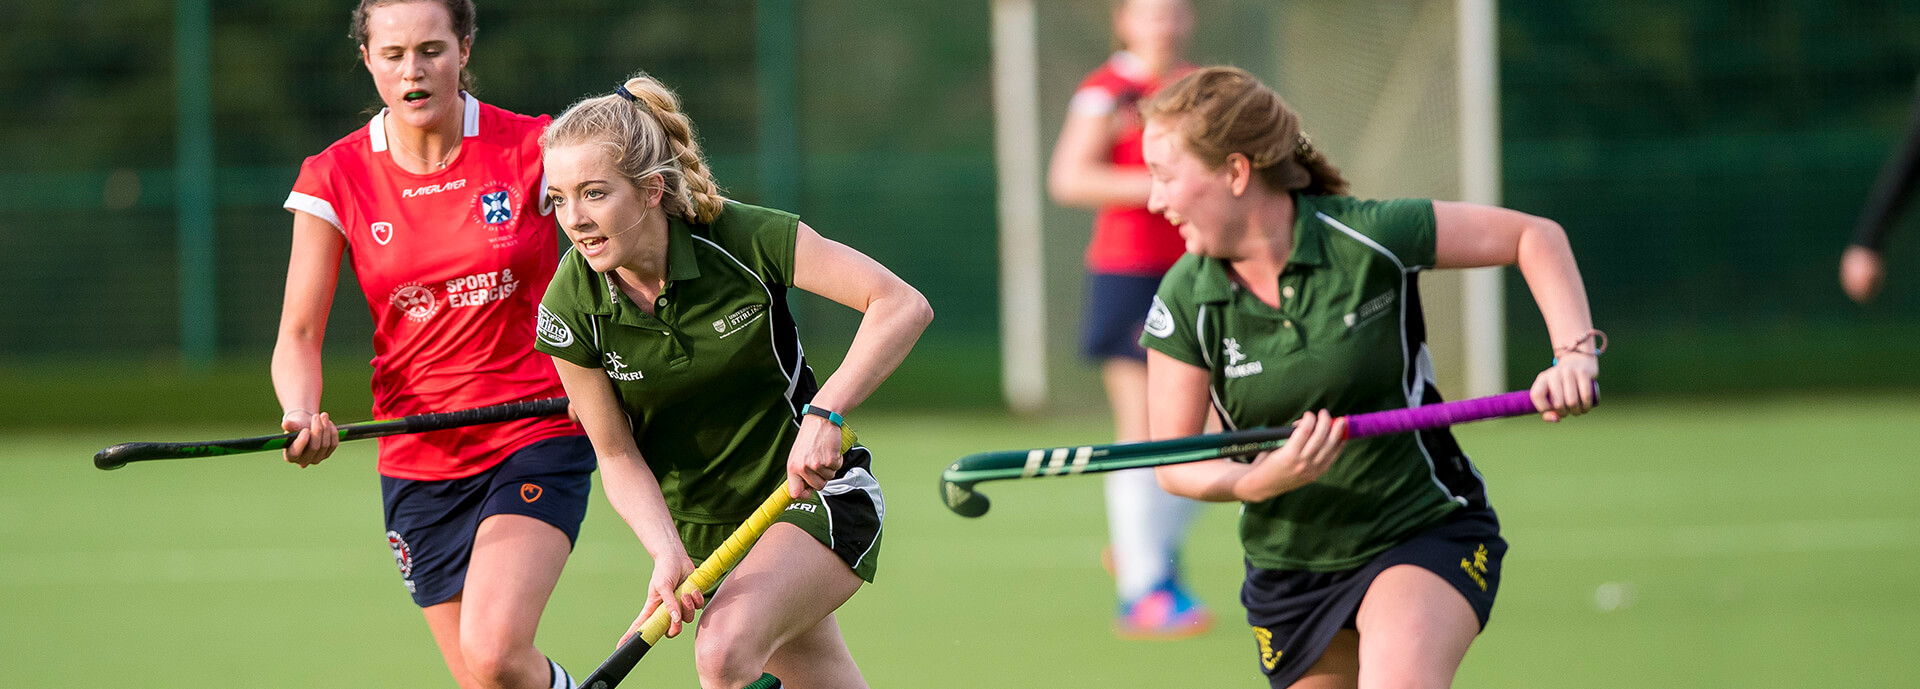 An image of female students playing hockey